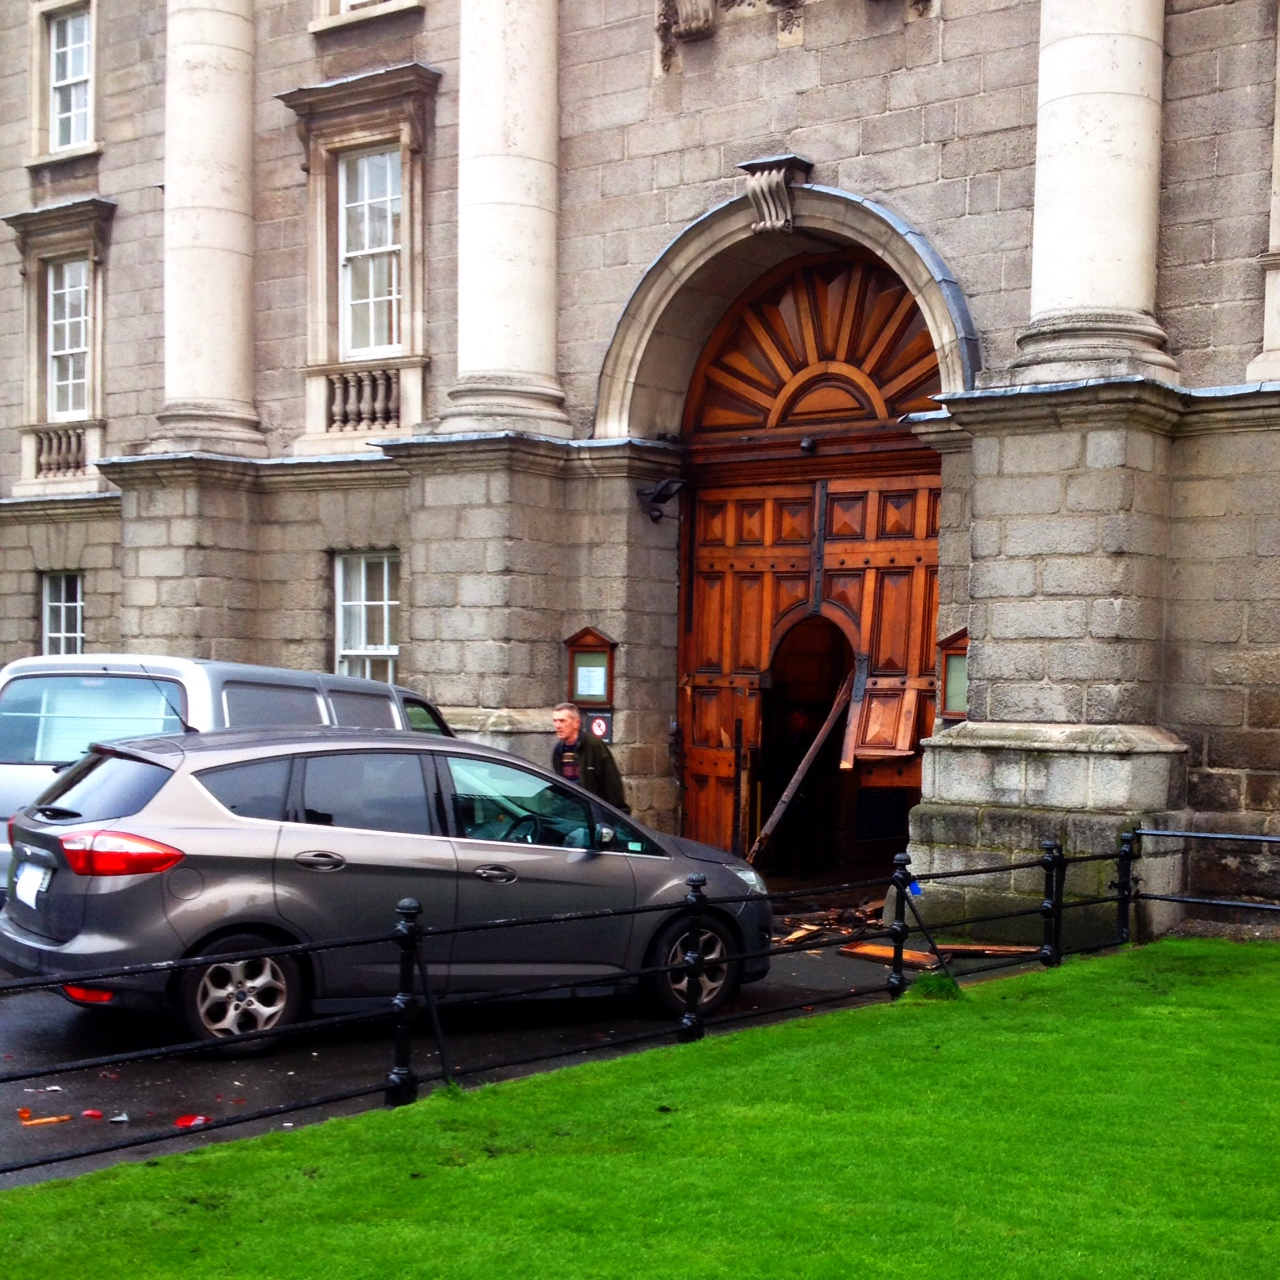 The front gate at Trinity College Dublin this morning. & Meanwhile At Trinity | Broadsheet.ie